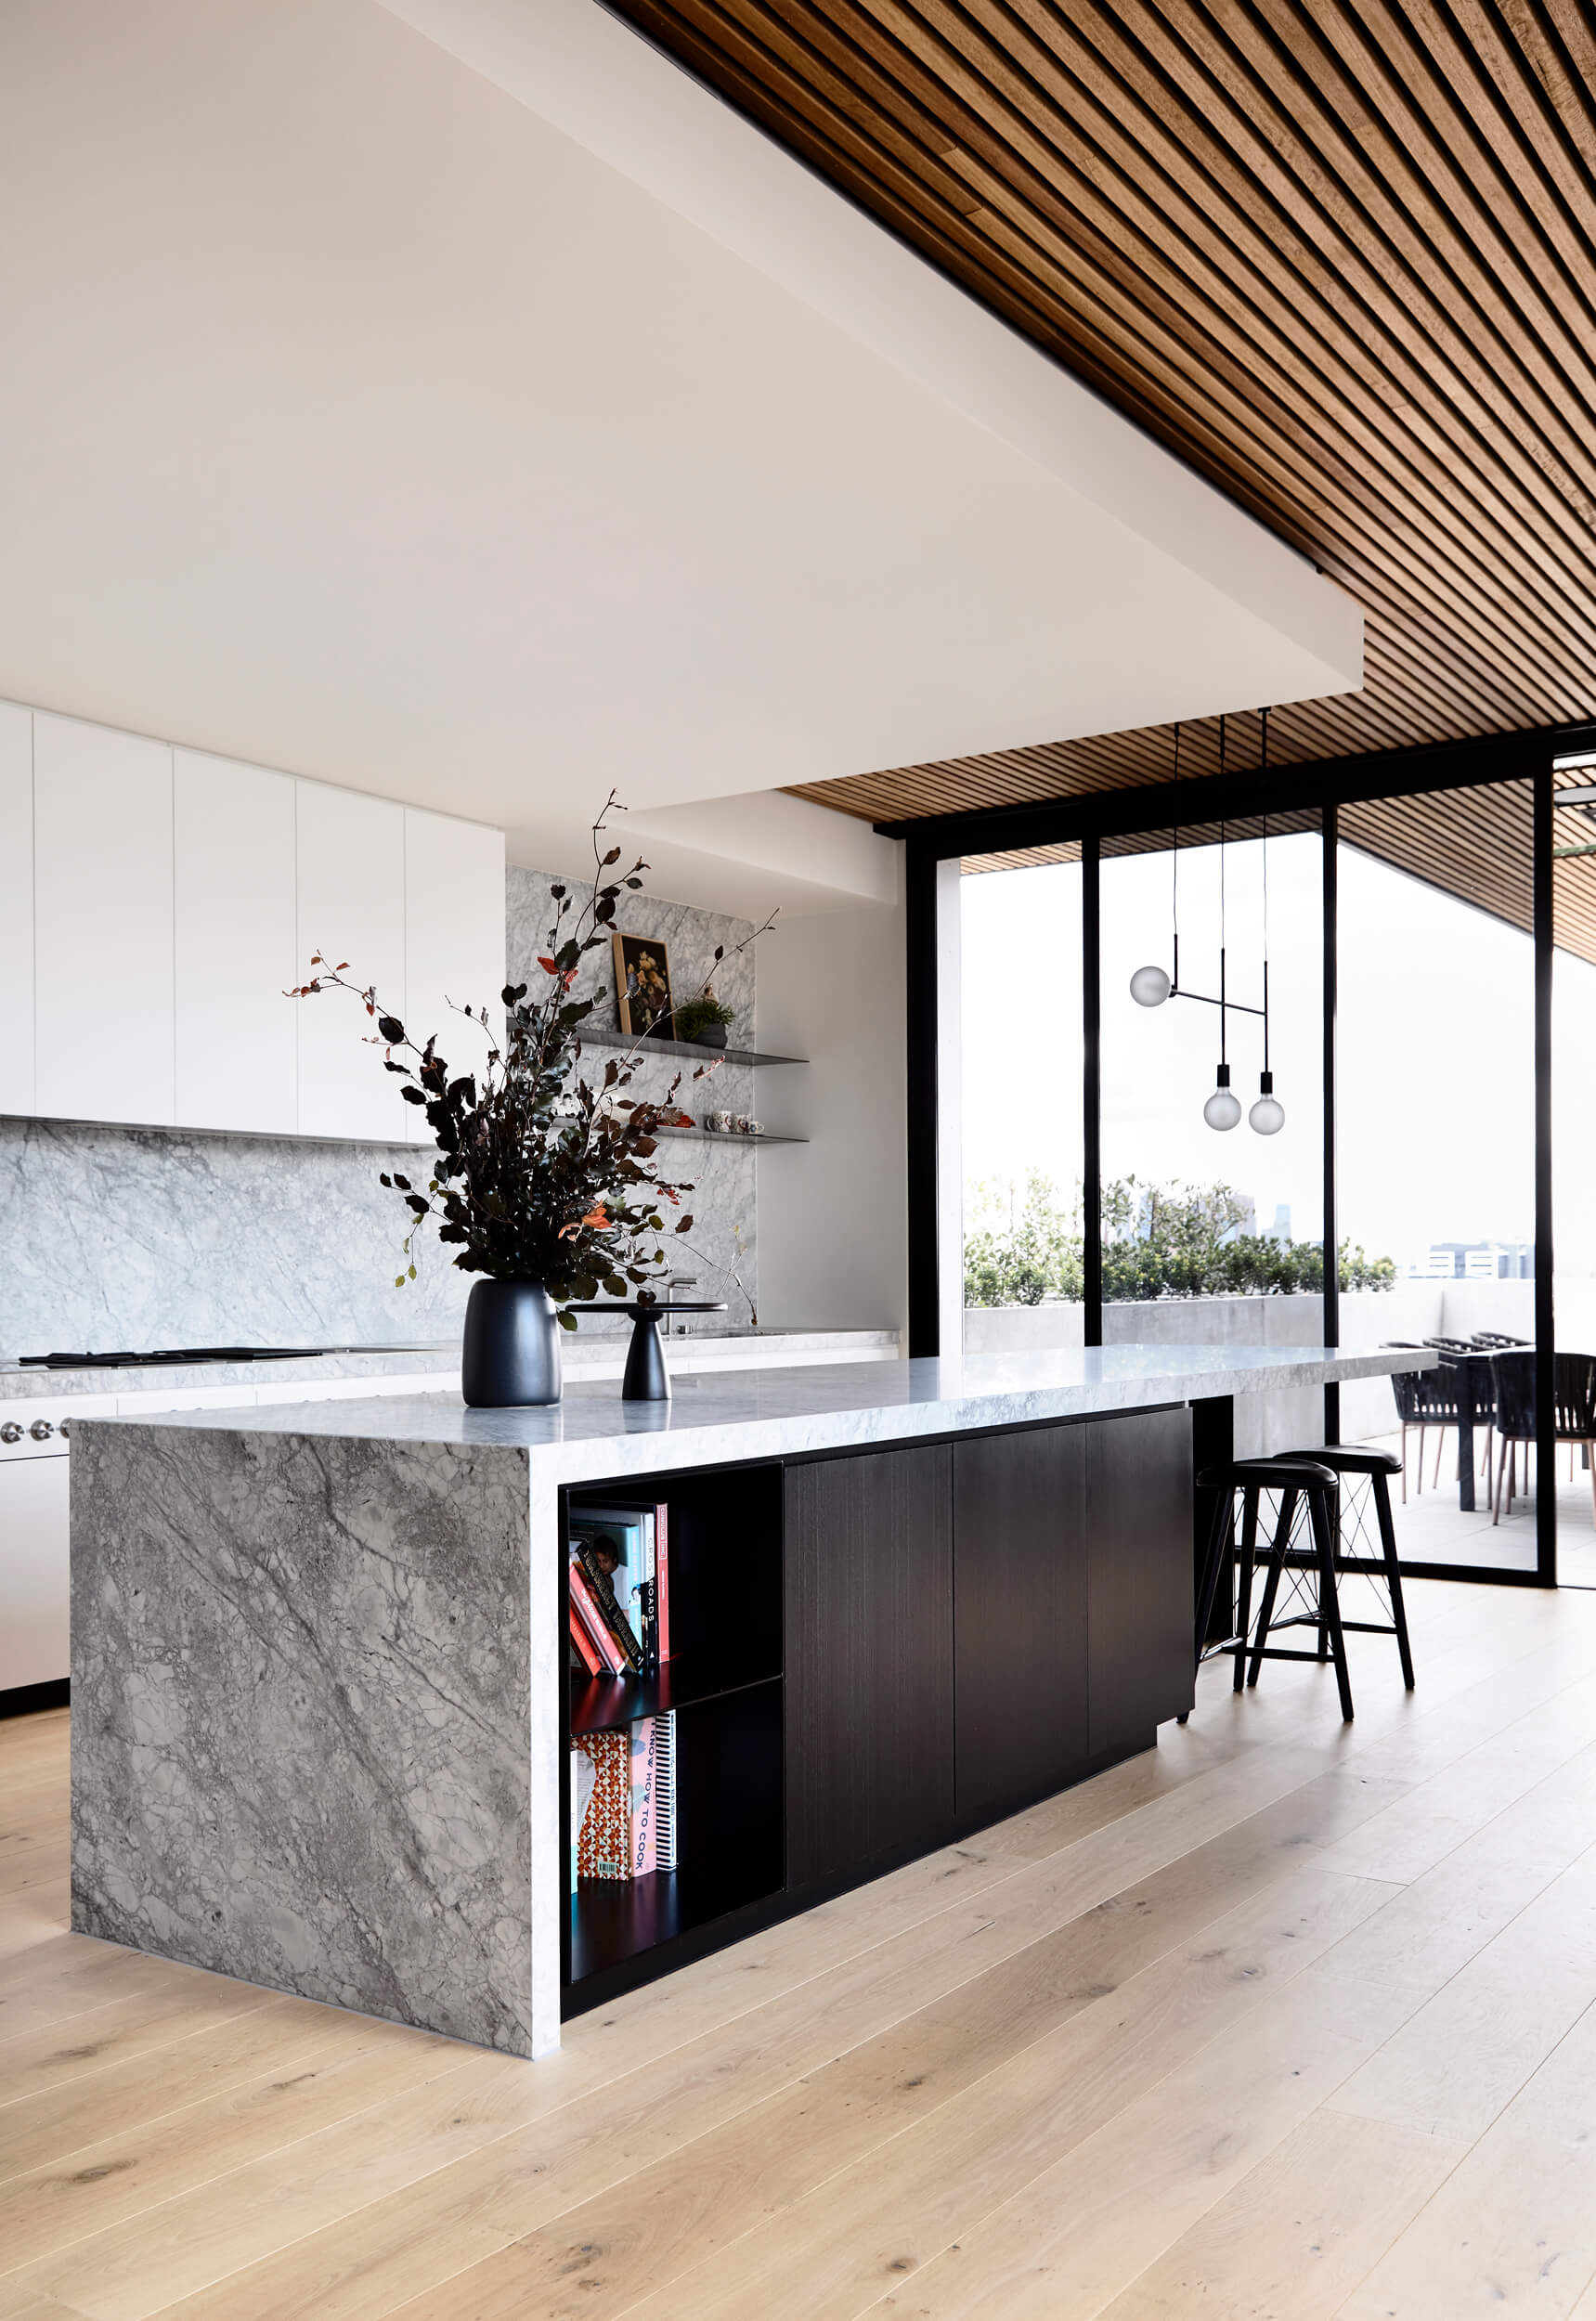 Holly Penthouse By Tom Robertson Architects Project Feature Melbourne, Australia Local Australian Design & Architectureholly R V Derek032